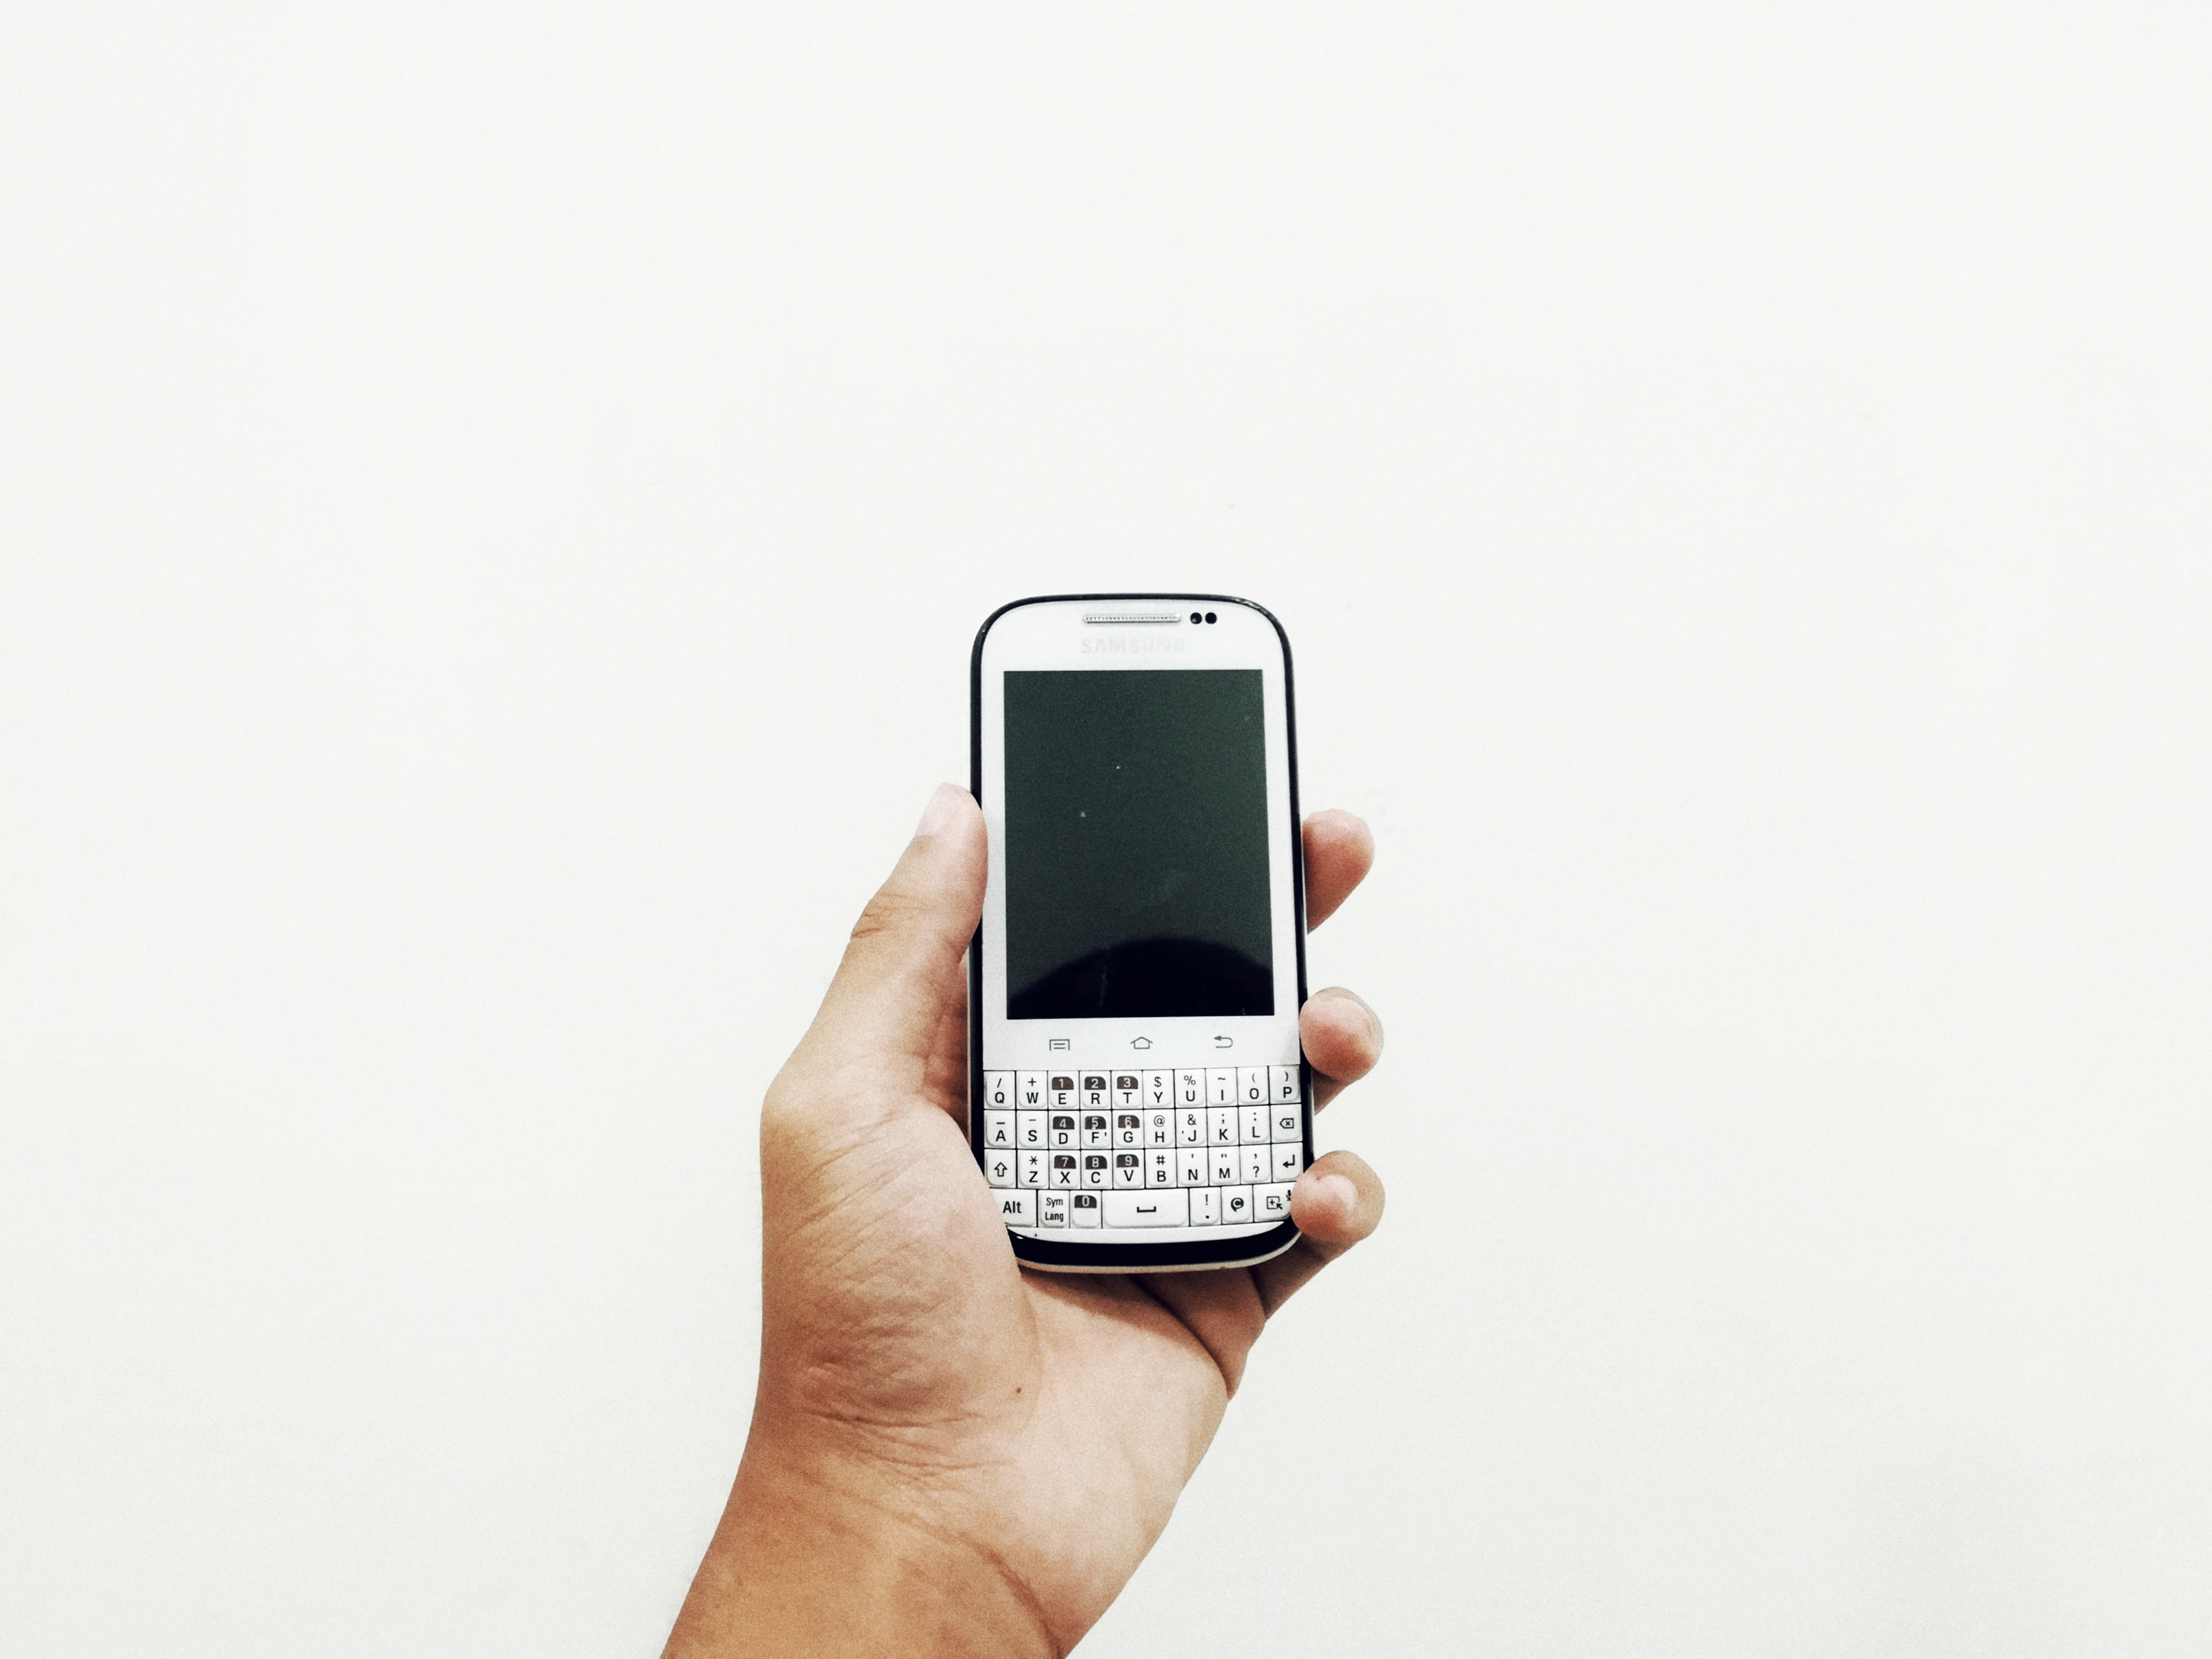 person holding white QWERTY phone